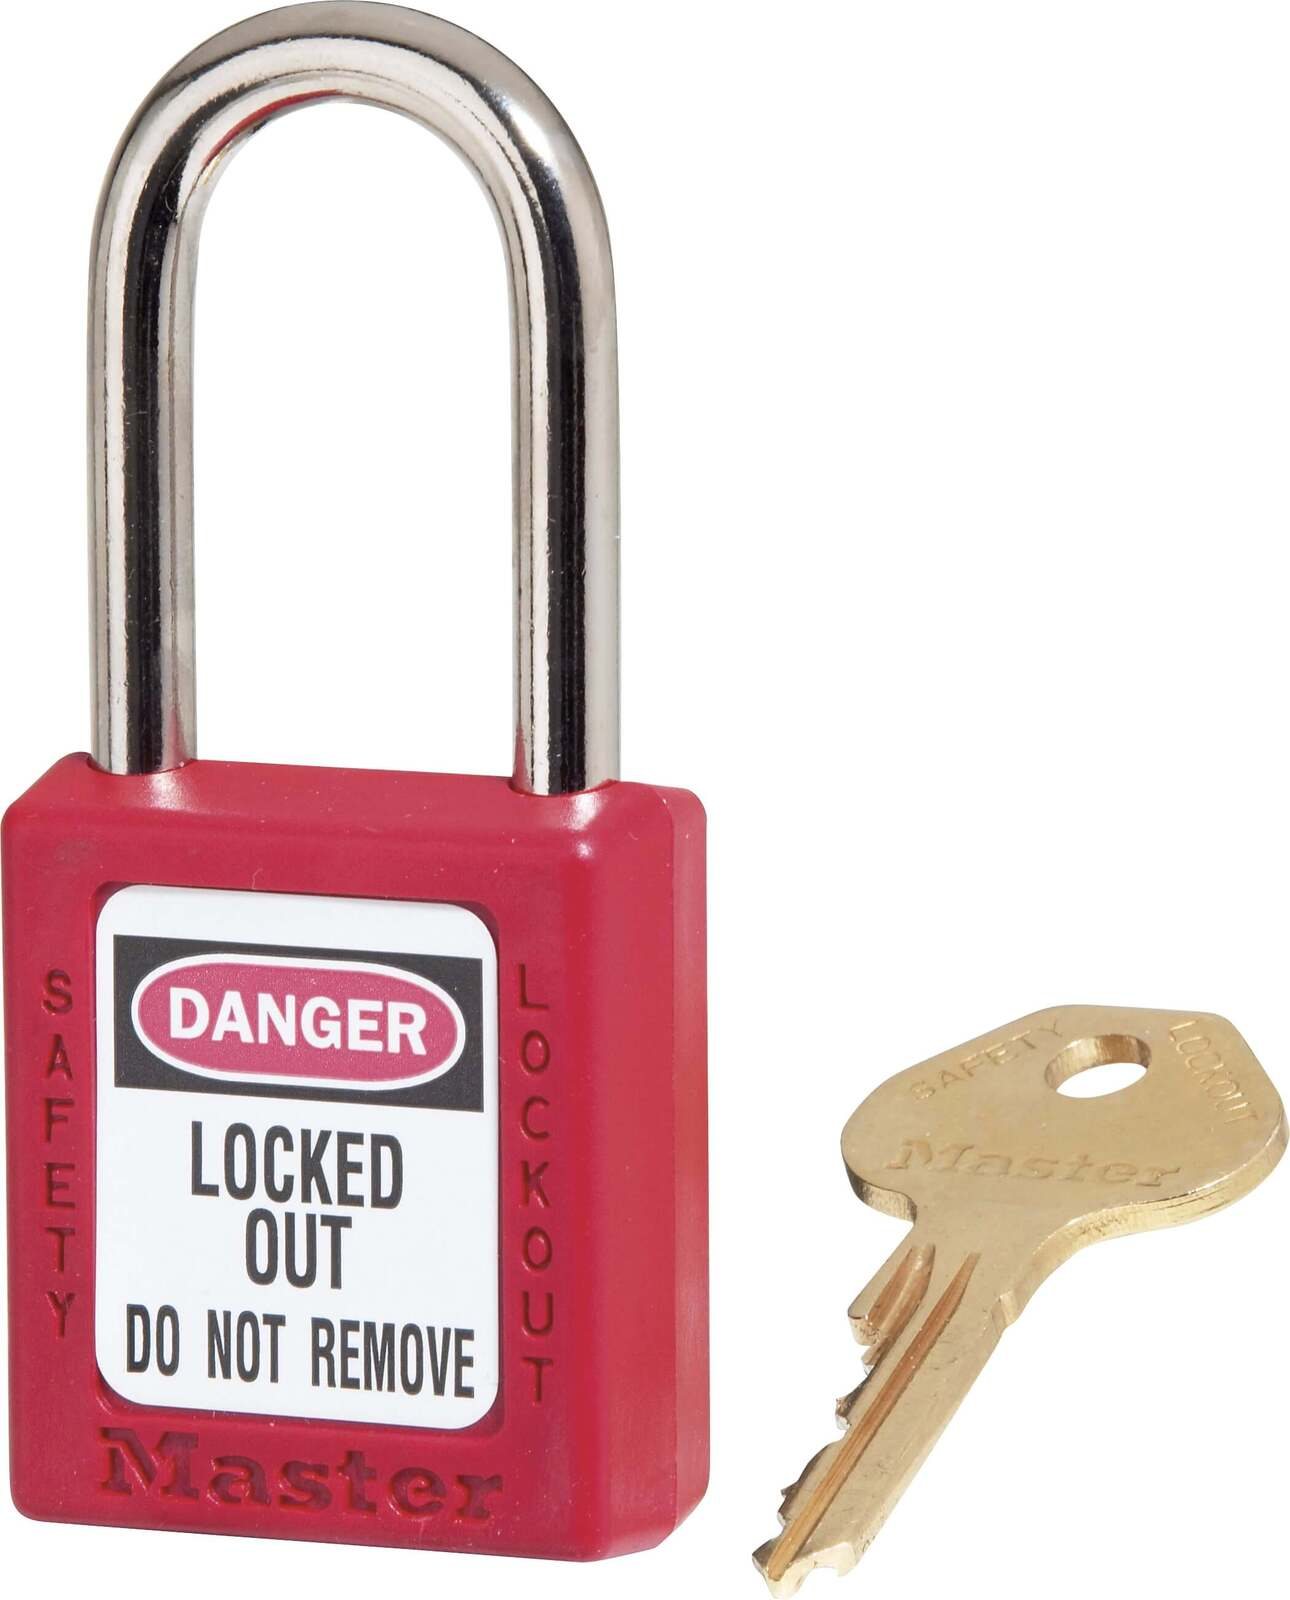 Master Lock 410 Safety Lockout Padlock / Isolation Lock - Red - AIMS Industrial Supplies